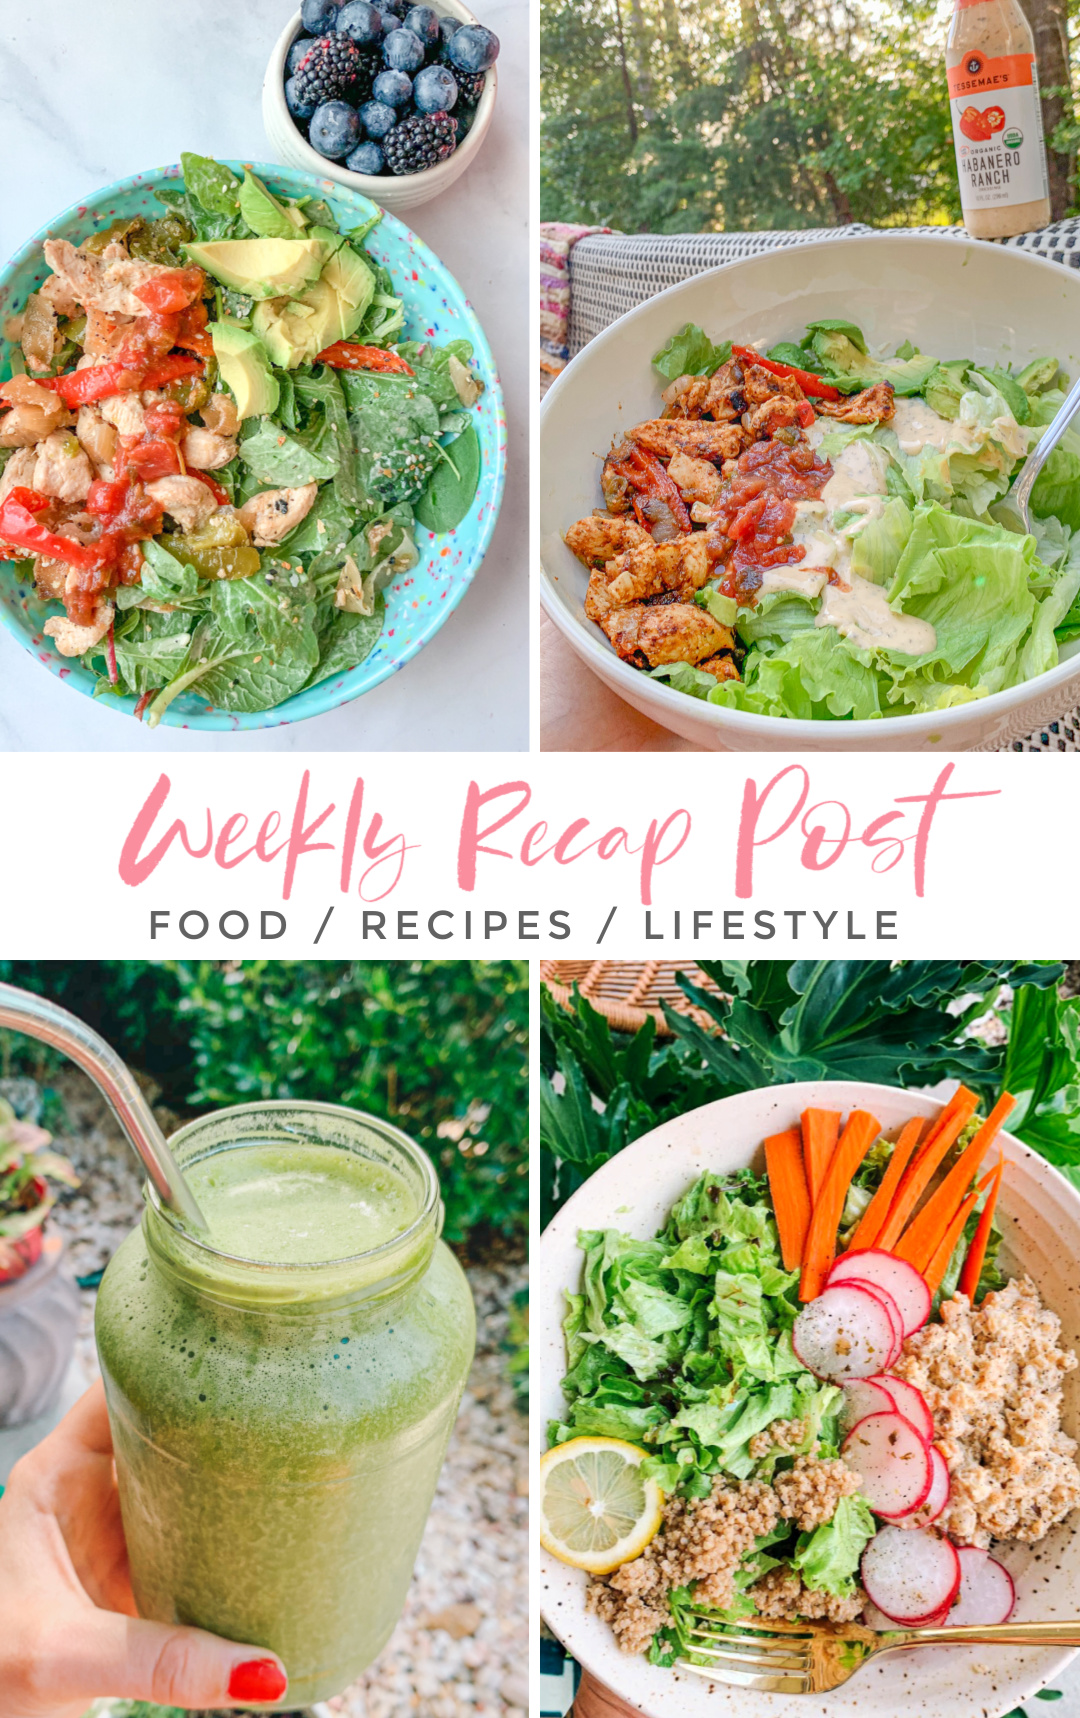 the weekly recap blog, gluten free, dairy free, plant based, healthy recipes, weight loss, lifestyle blogger, Charlotte North Carolina, simply taralynn, green smoothies, salads, food, lifestyle, running, home